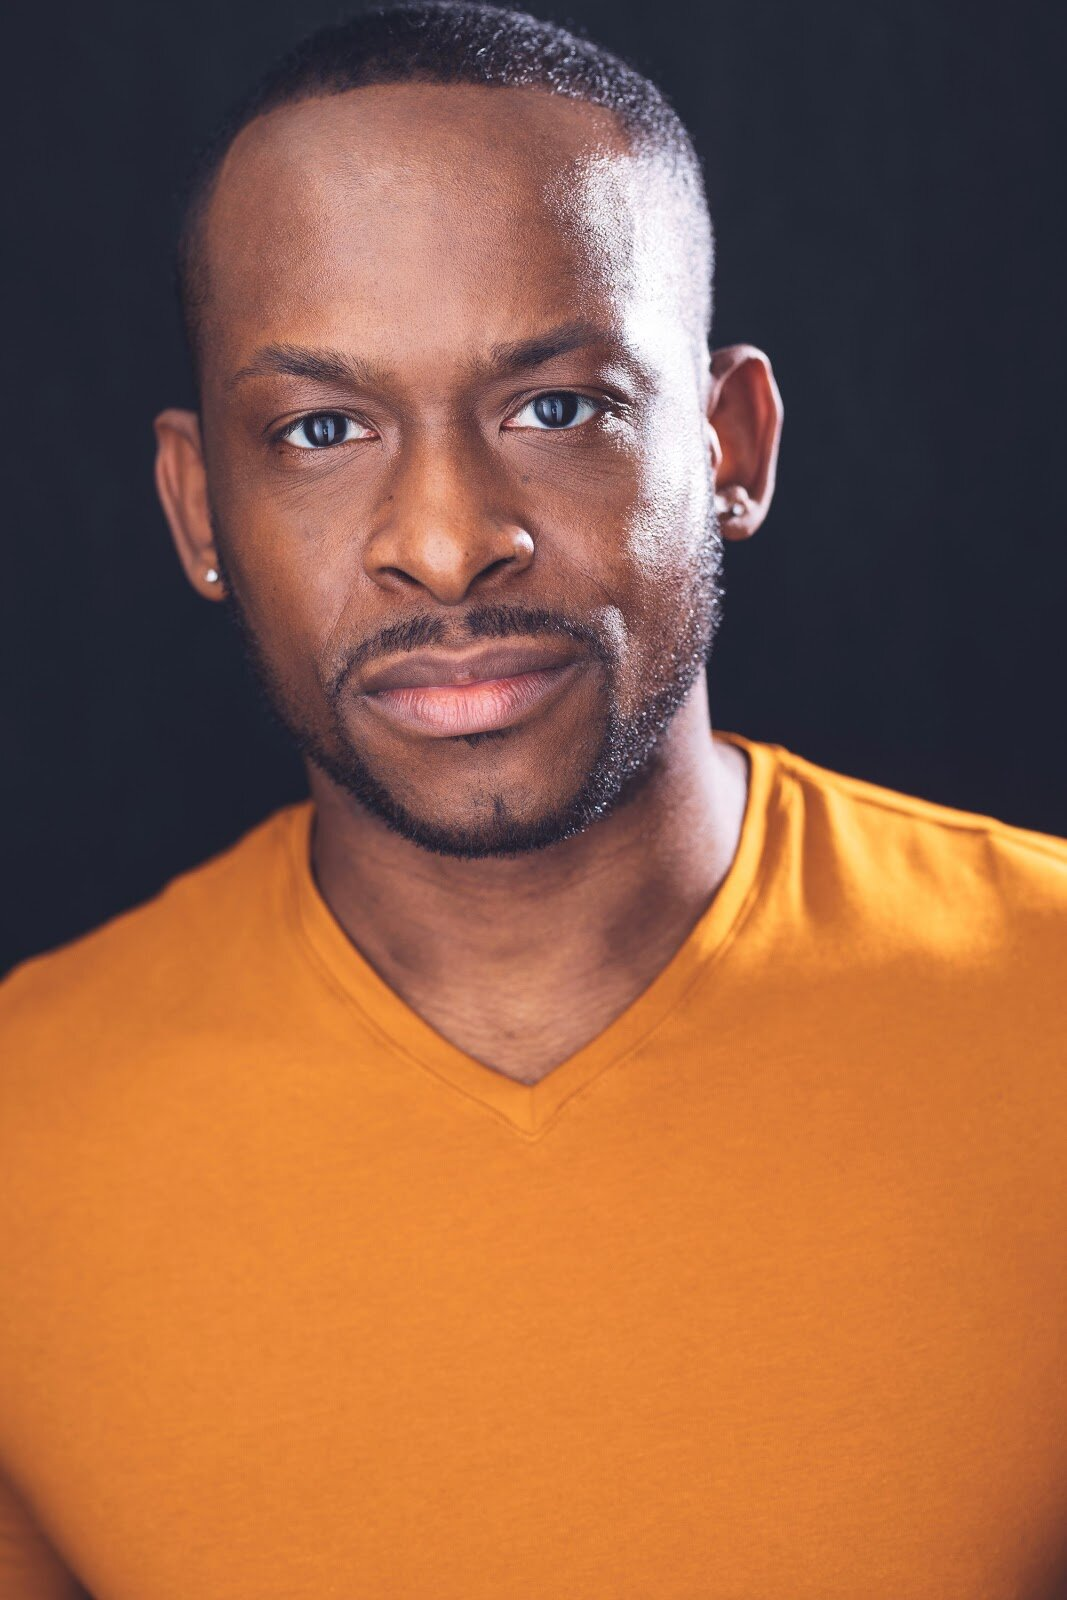 Headshot of Actor Law Dunford, a previous Alexander Technique student of Marya Spring Cordes.